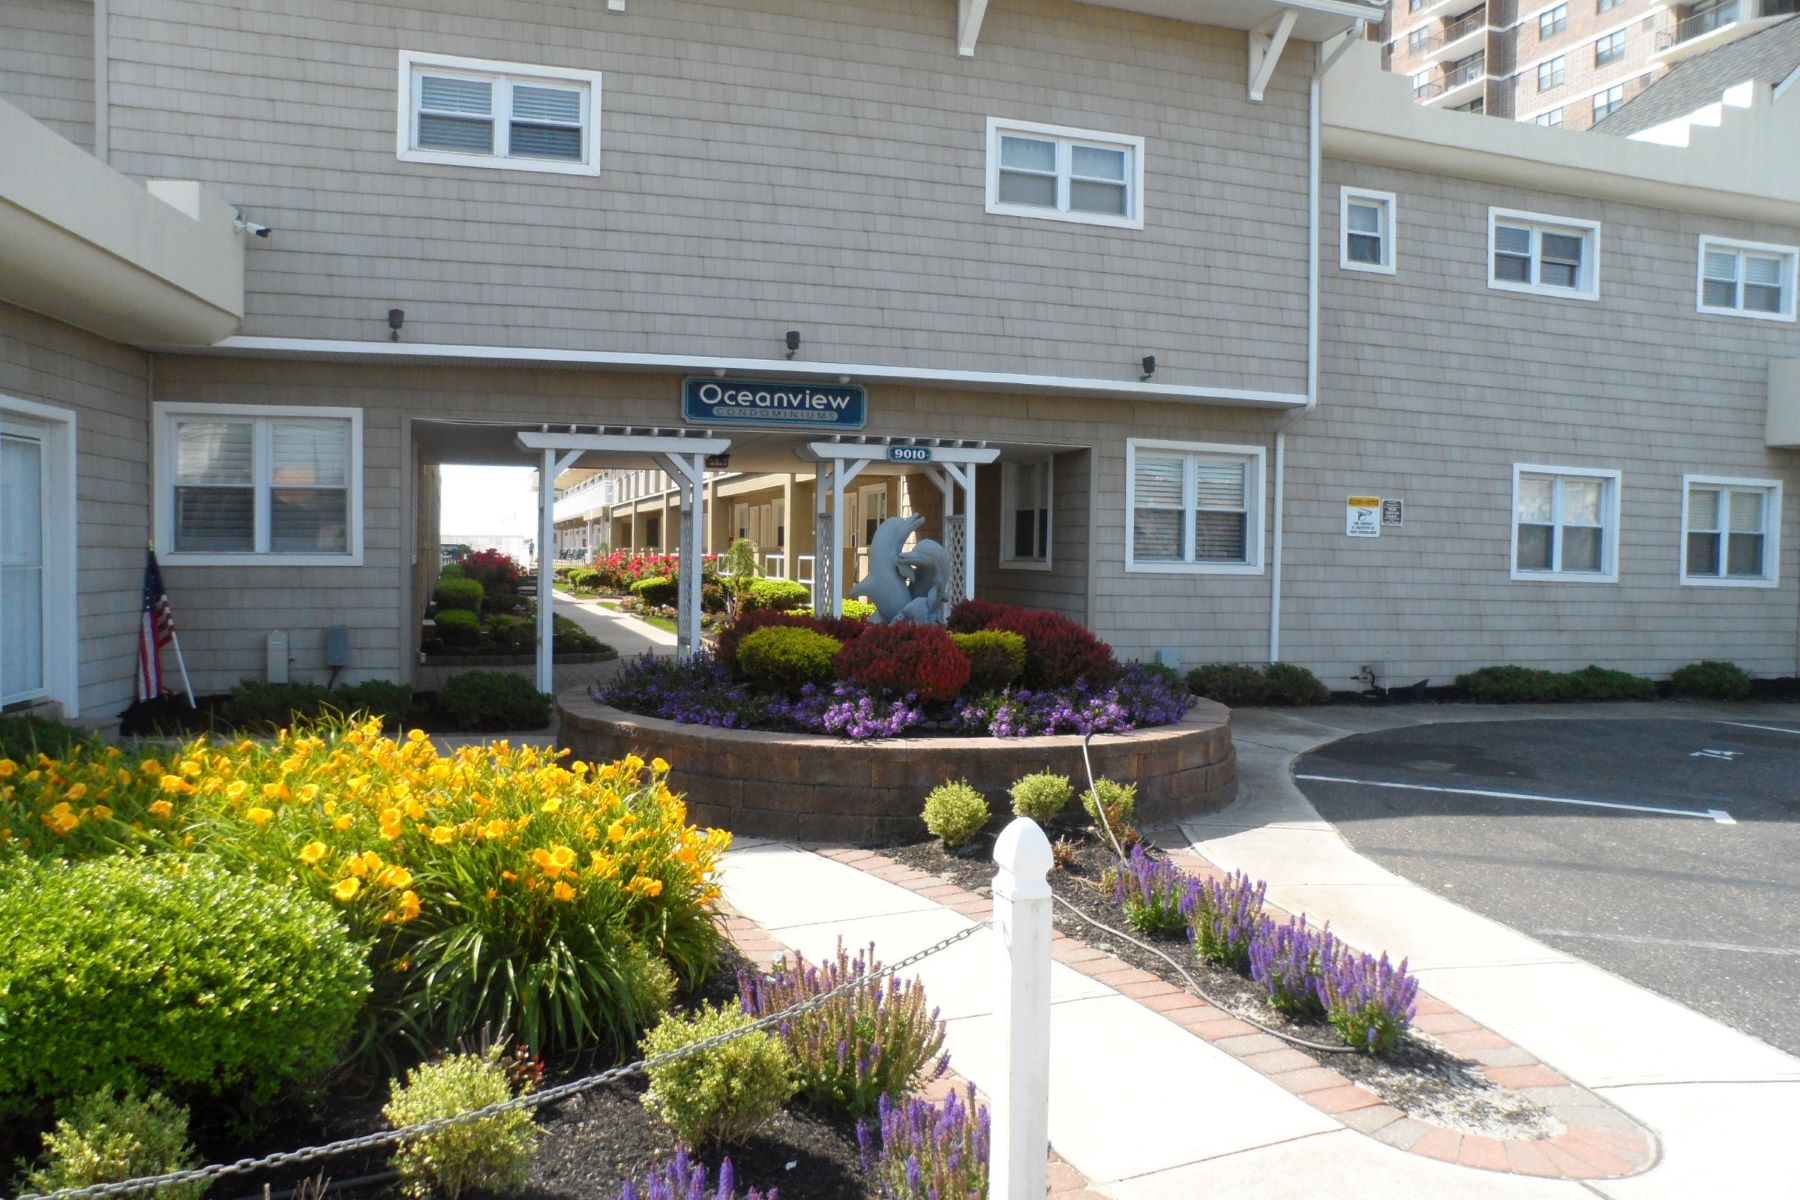 Condominium for Rent at 9010 Atlantic Ave #221 Margate, New Jersey 08402 United States